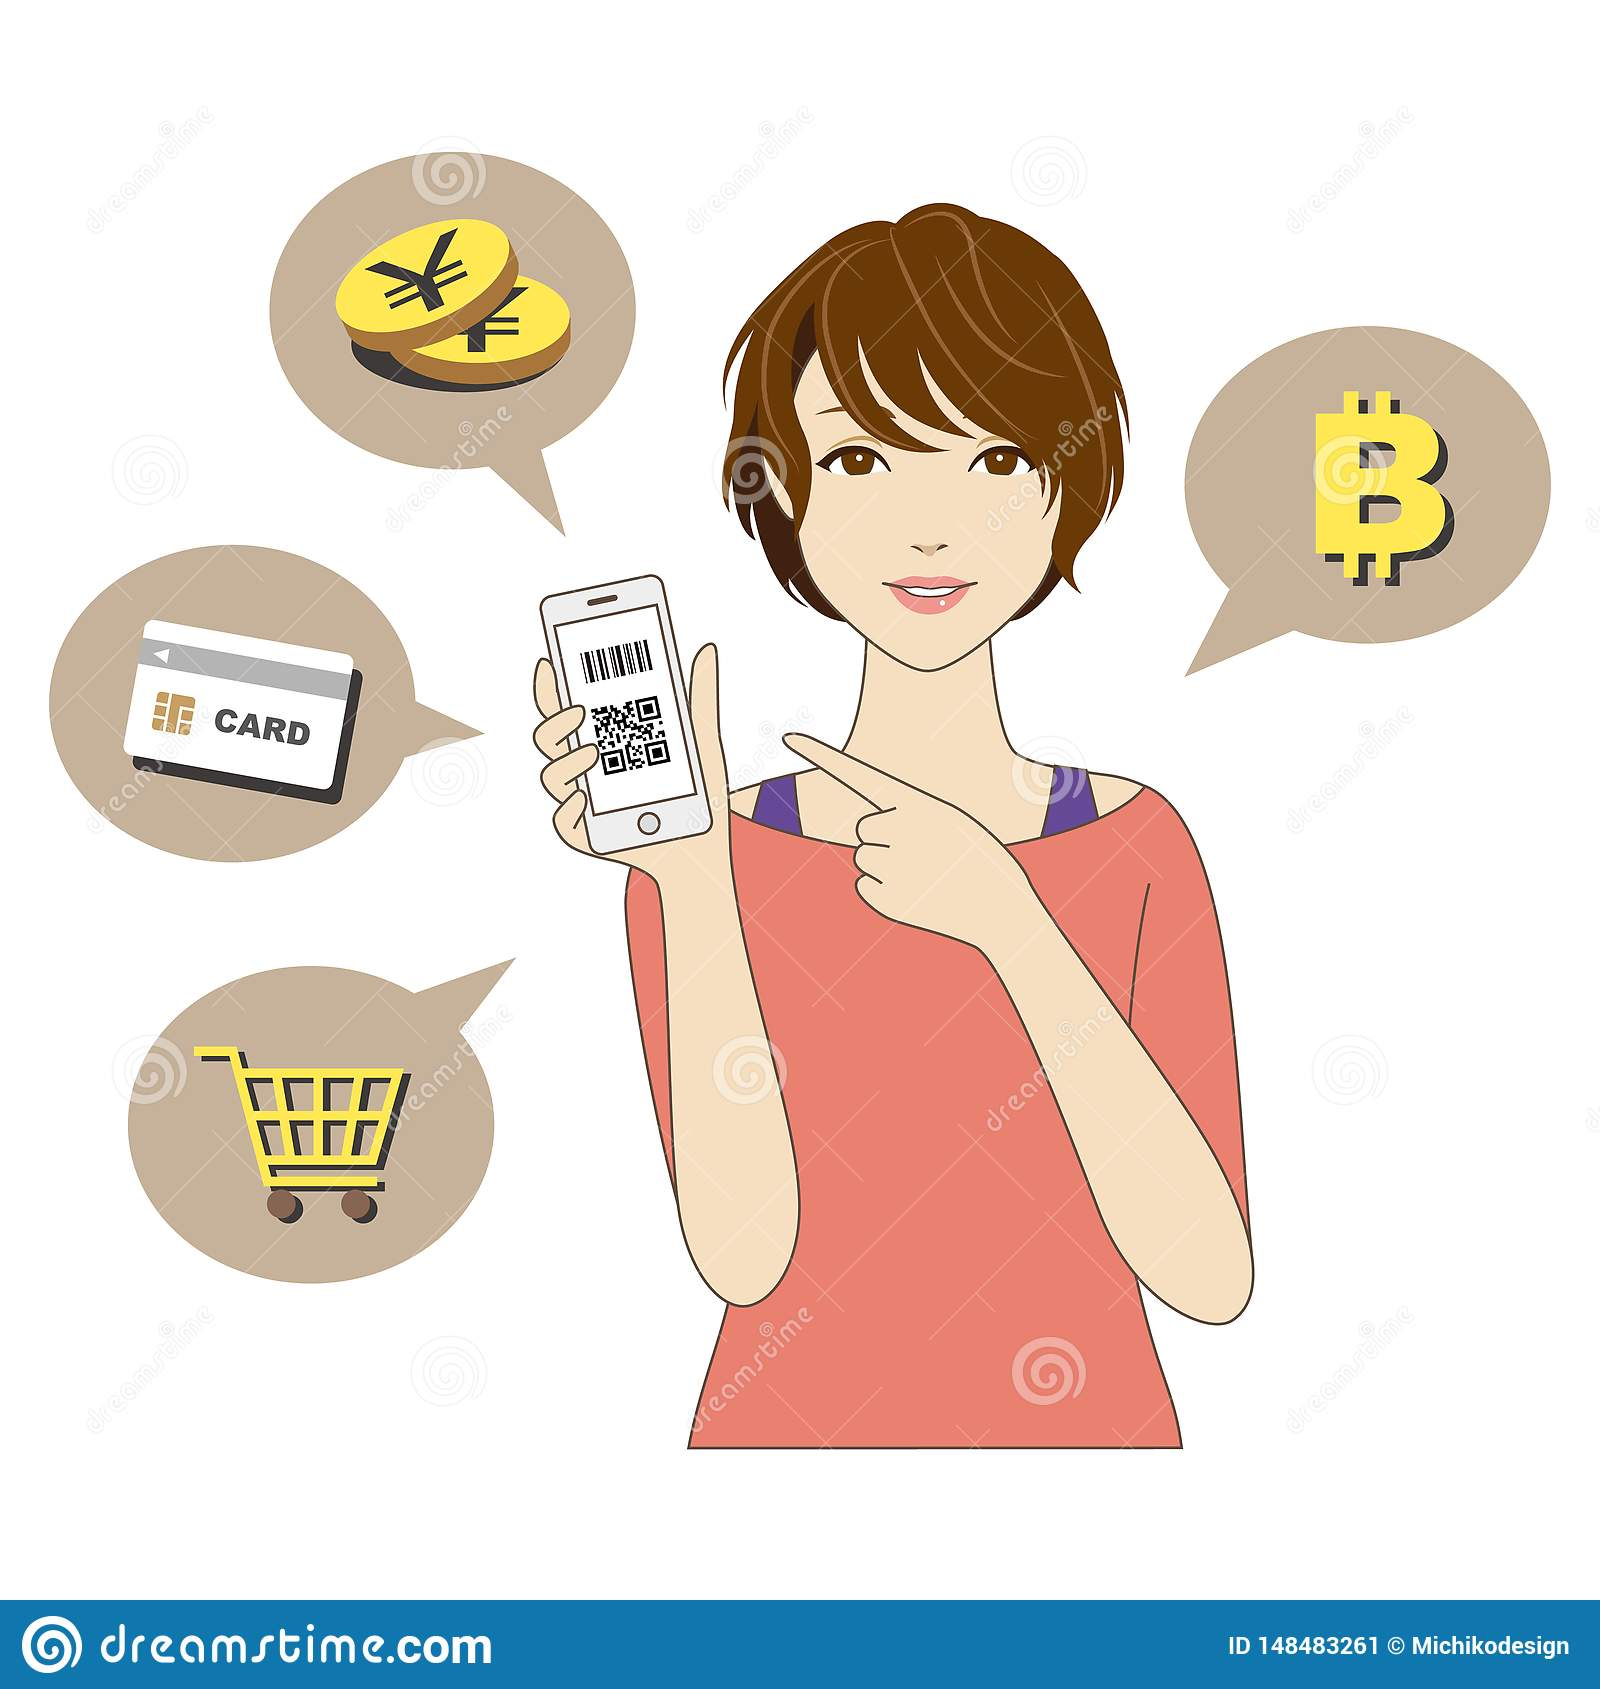 Cashless and Smartphone payment image, a woman holding a smartphone